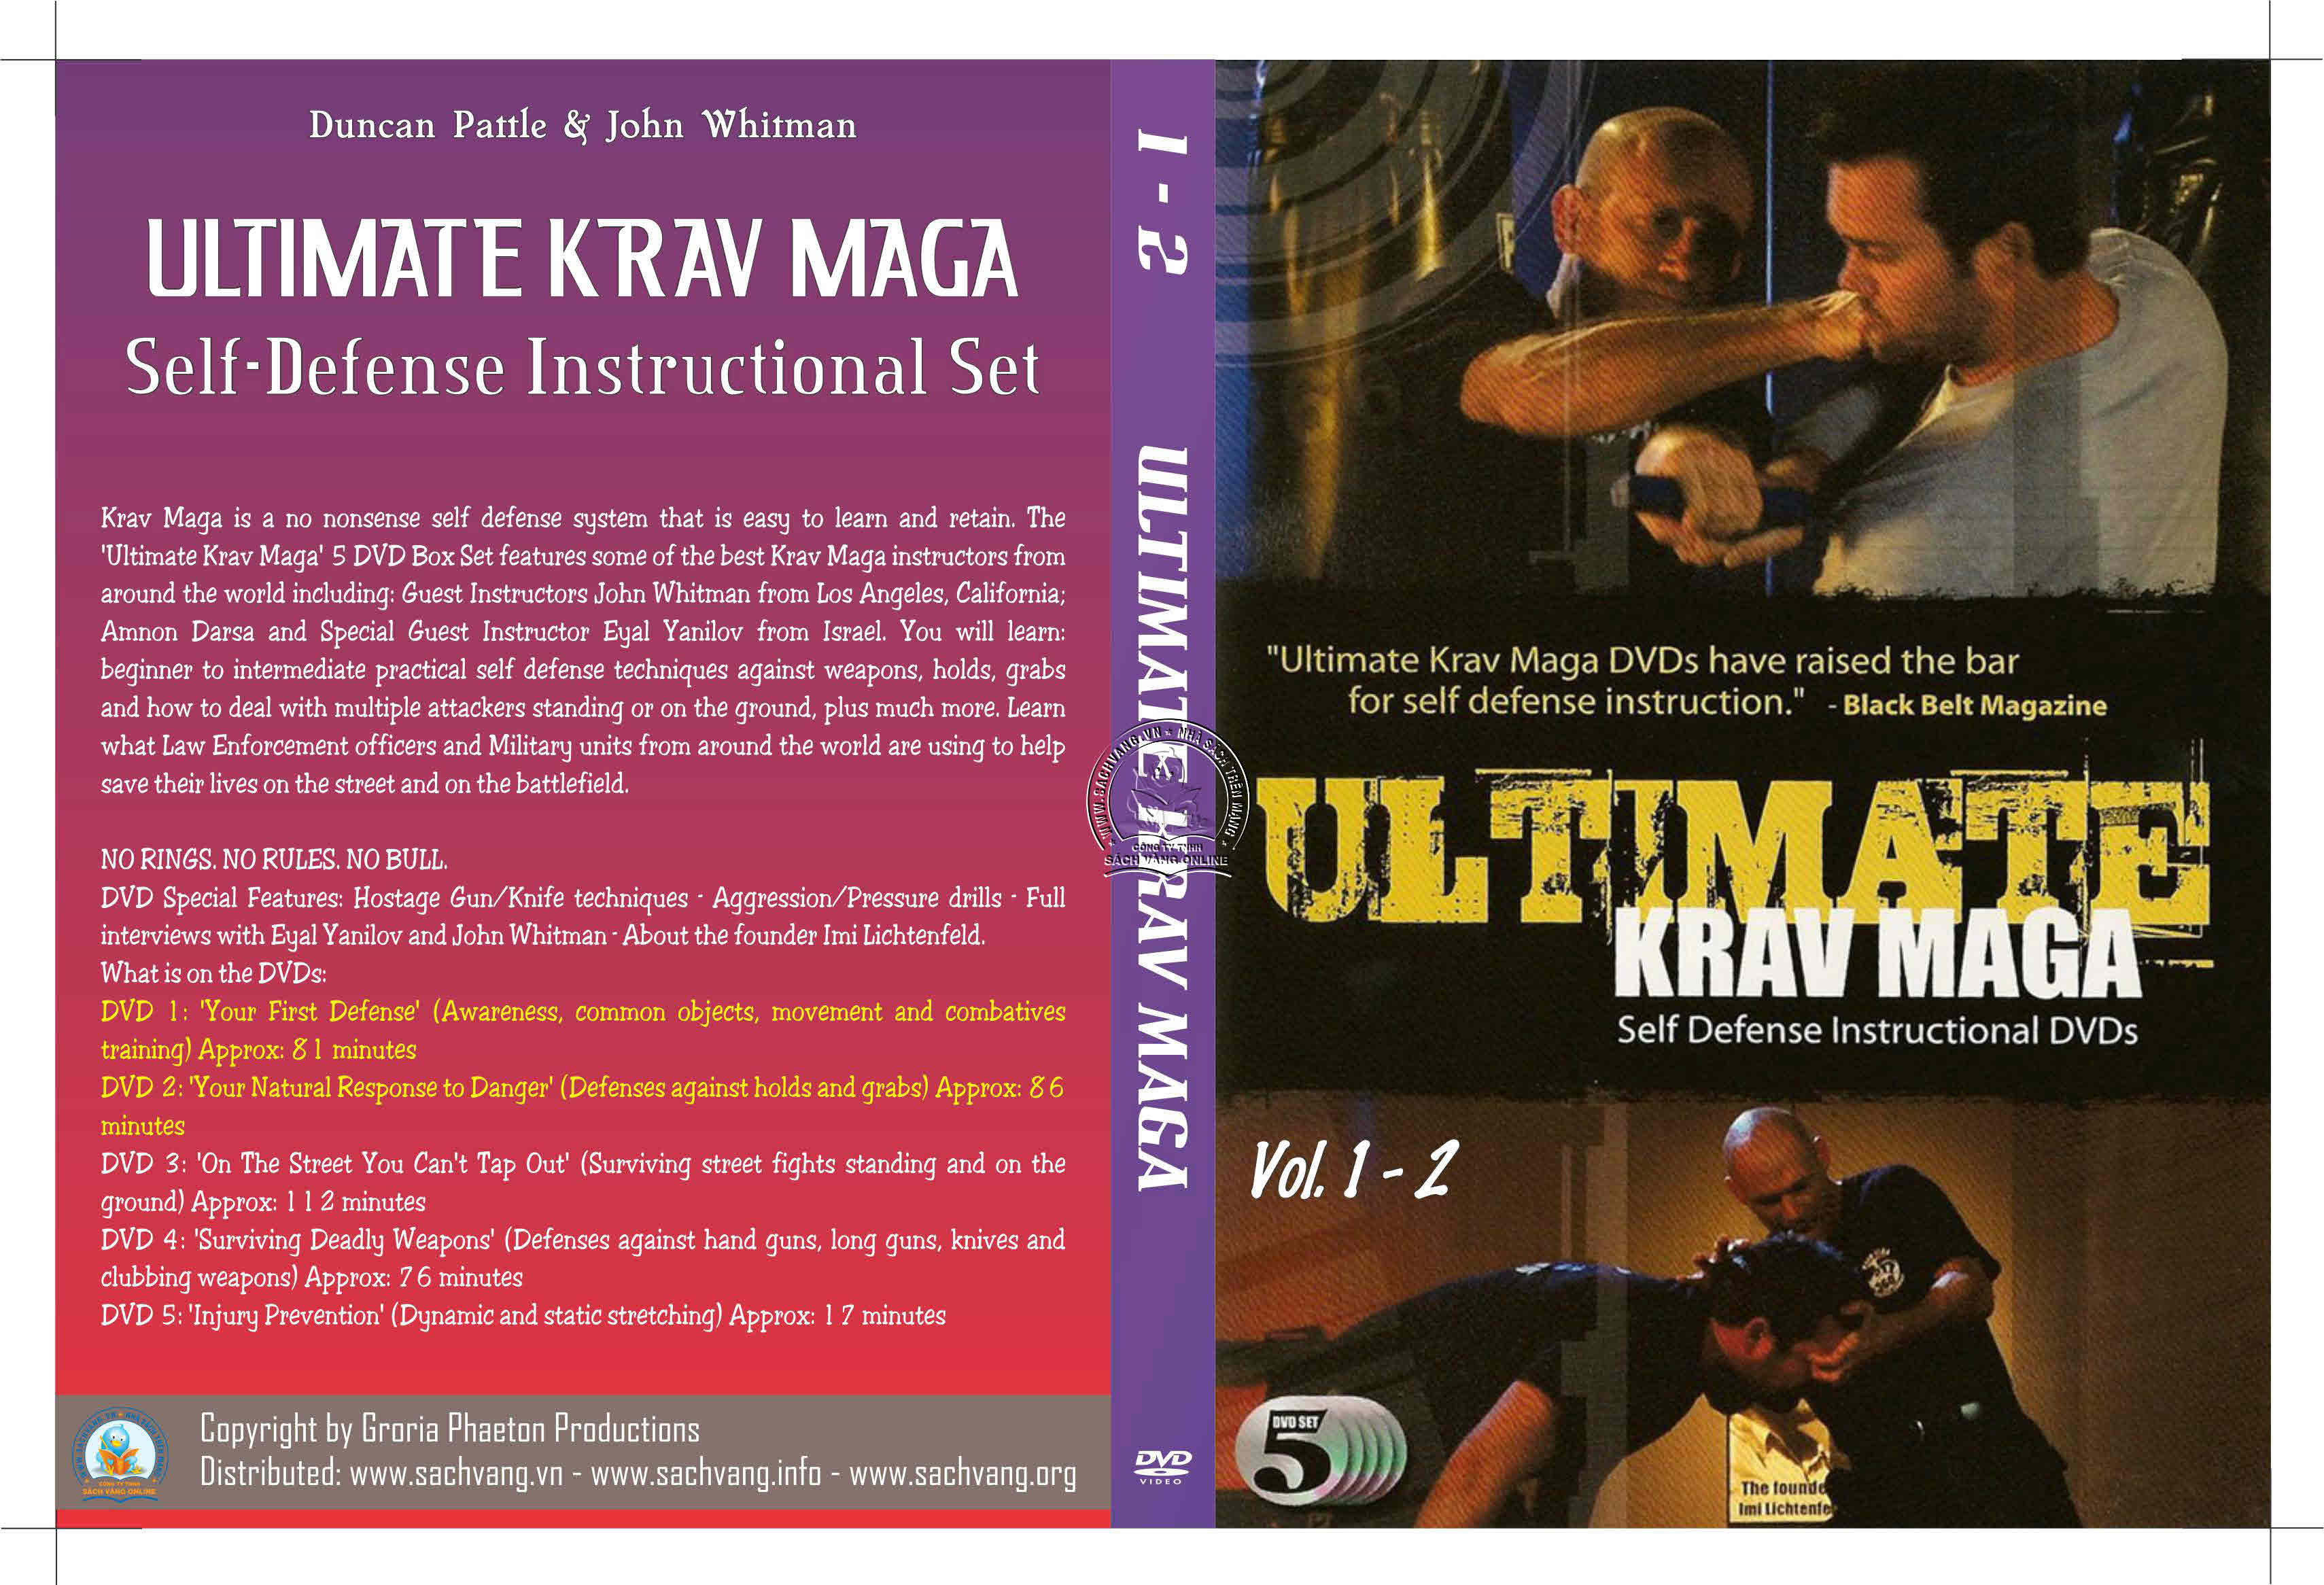 Ultimate Krav Maga Self-Defense Instructional Set cover